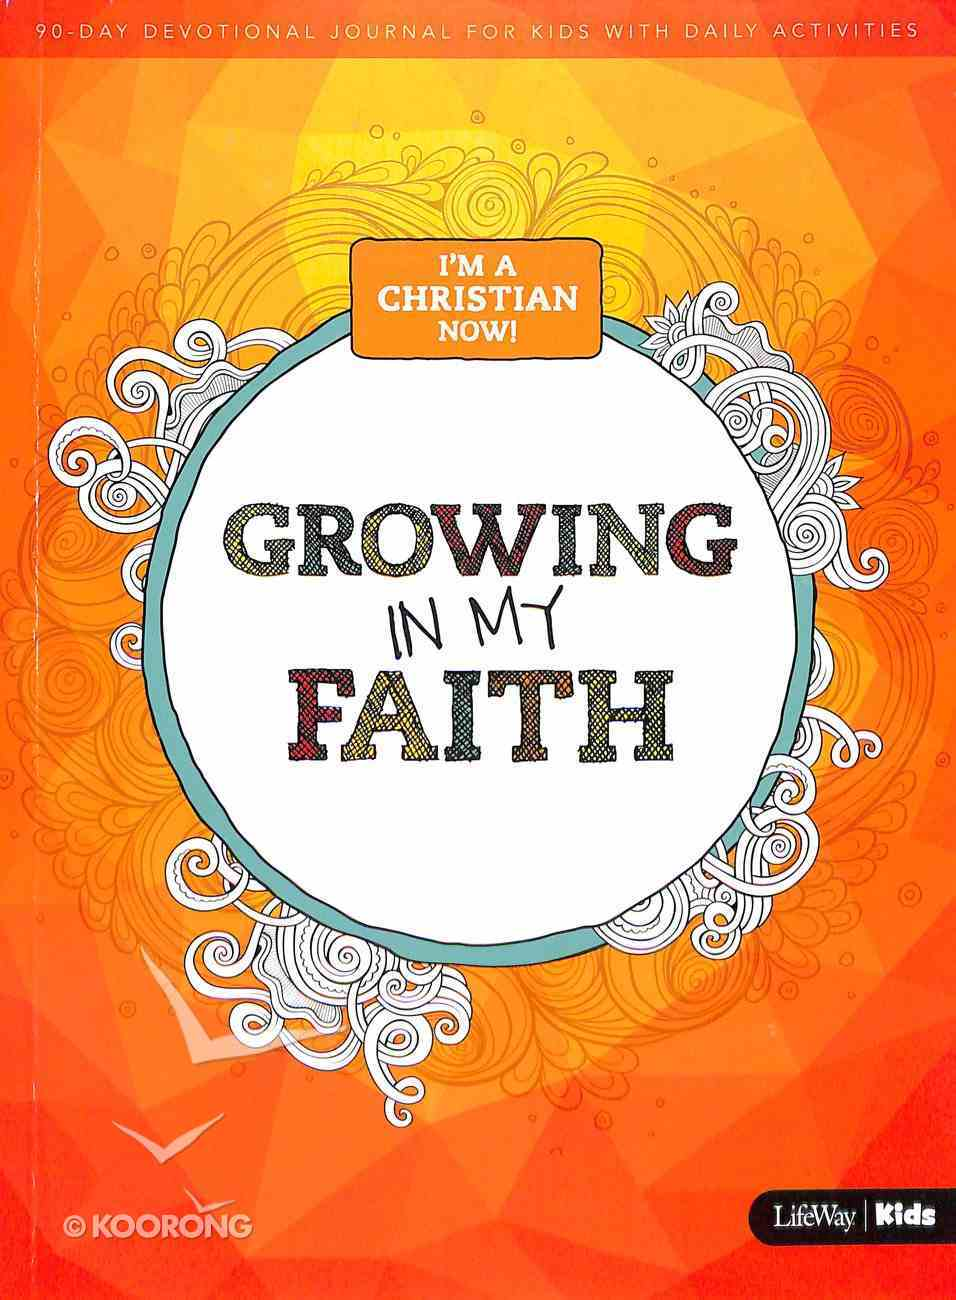 I'm a Christian, Now: Growing in My Faith - 90 Day Devotional Journal For Kids With Daily Activities Paperback